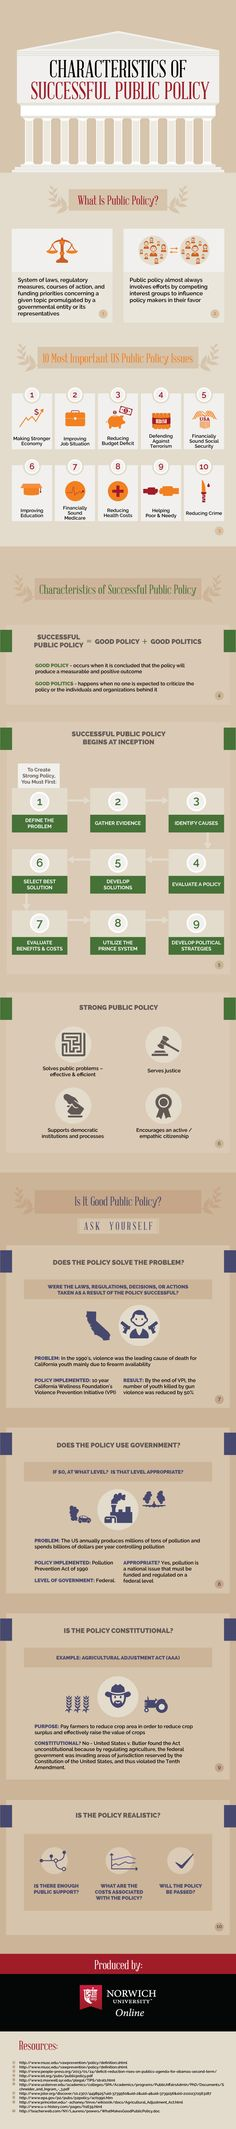 Characteristics of Successful Public Policy #infographic #PublicPolicy #Business